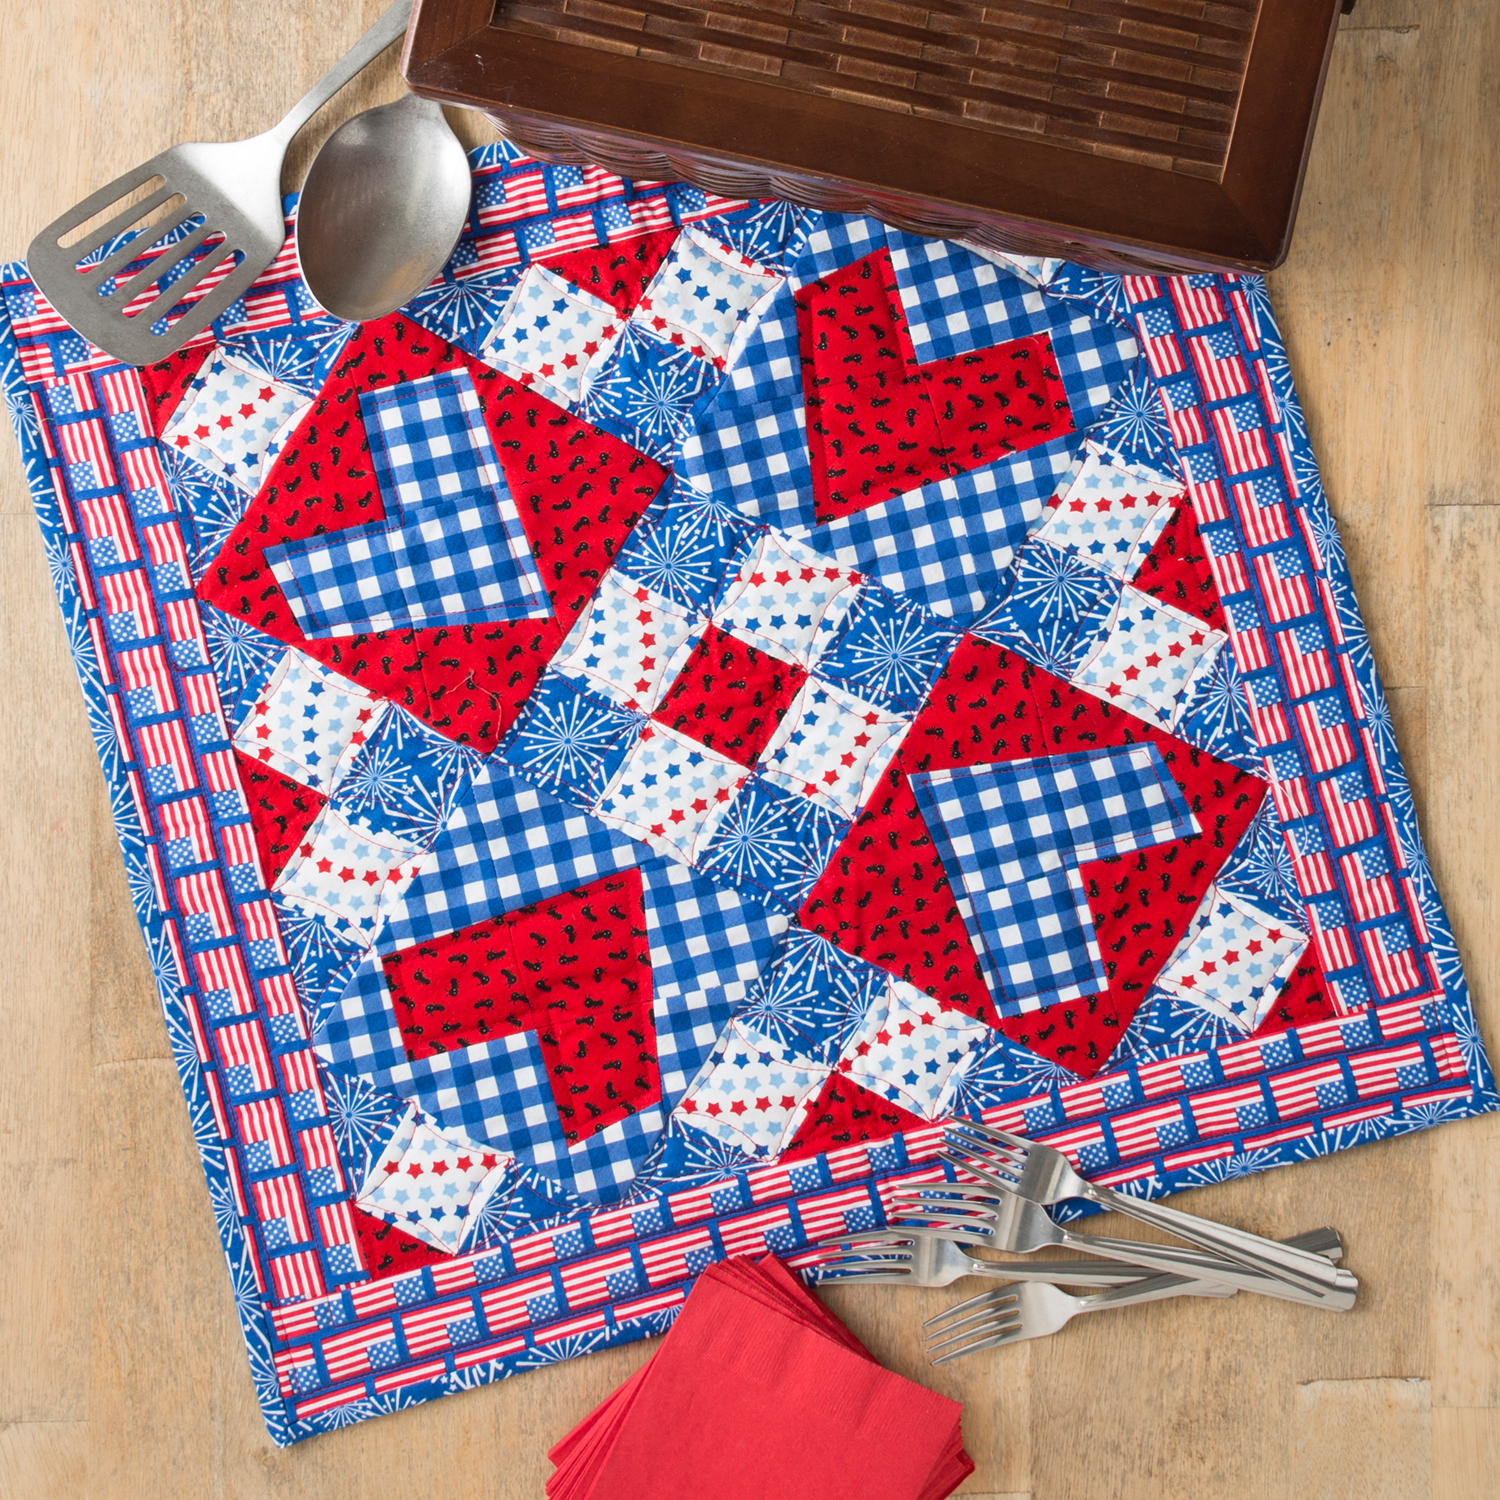 PQ11488-picnic-love-throw-quilt-lifestyle-1500x1500-blog